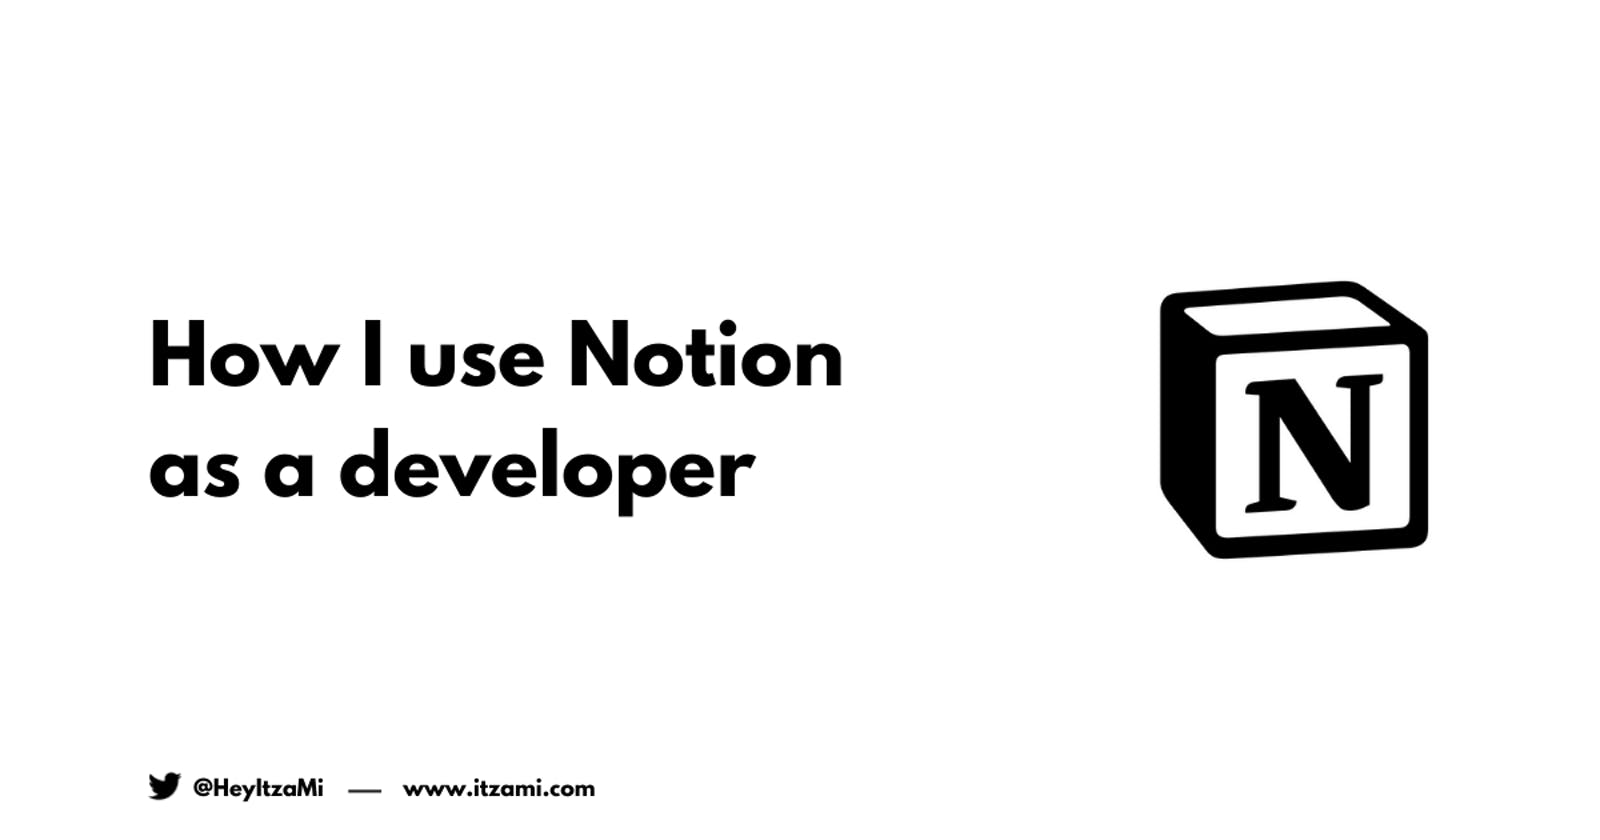 How I use Notion as a developer